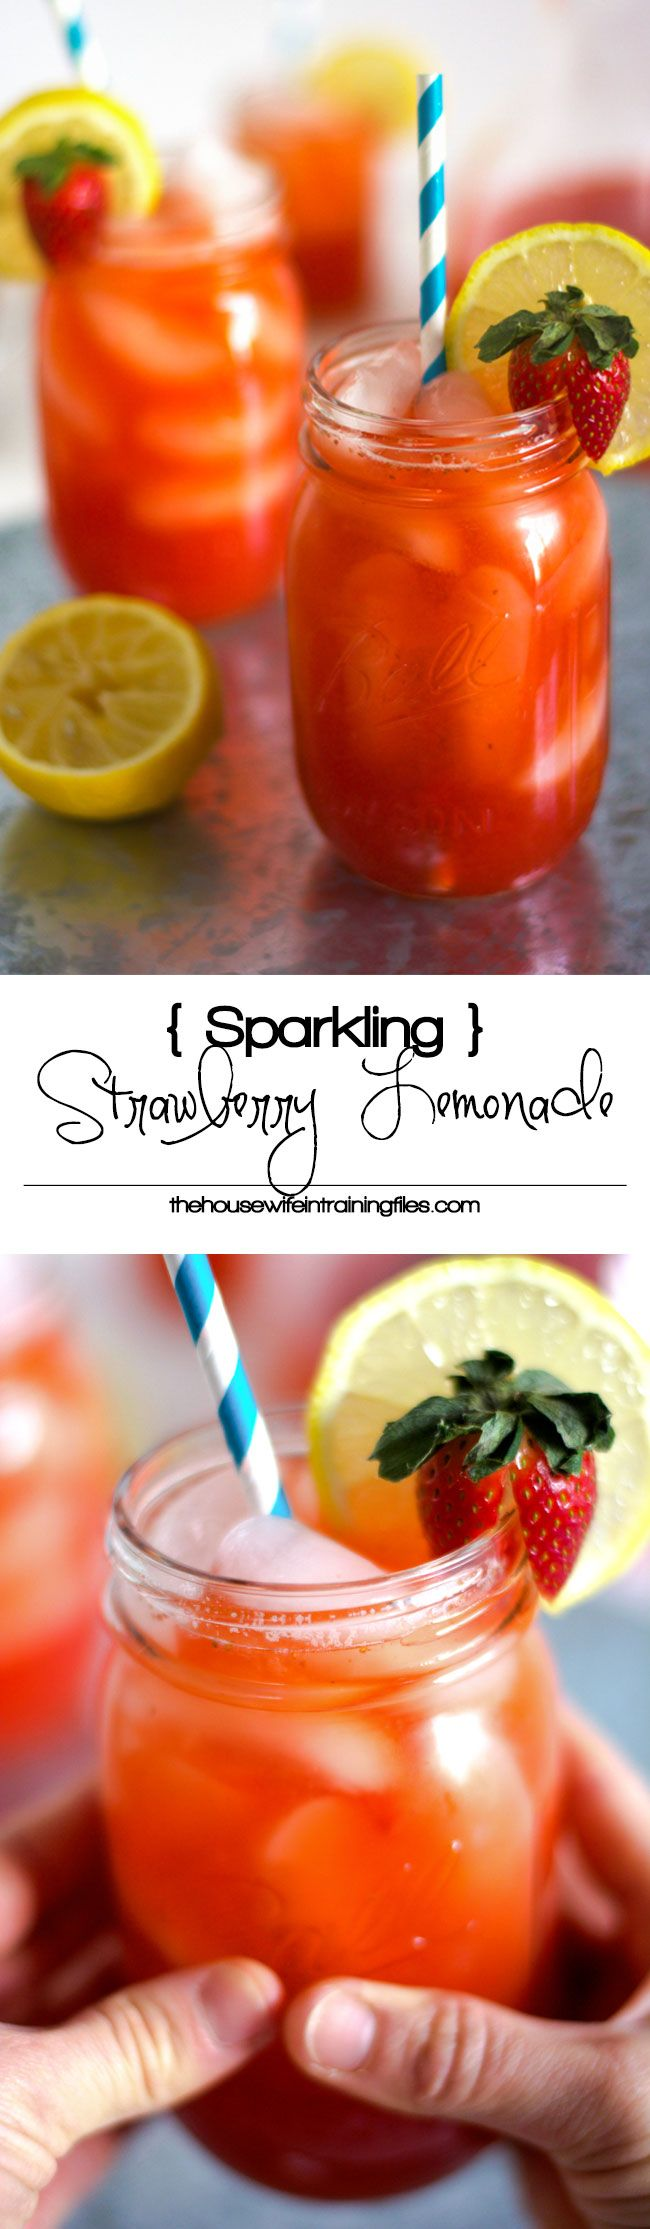 Skinny Sparkling Strawberry Lemonade is healthy, sweet and tart all in one sip! Fresh strawberries mixed with fresh lemonade and a touch of sweetness is the perfect refreshing drink!